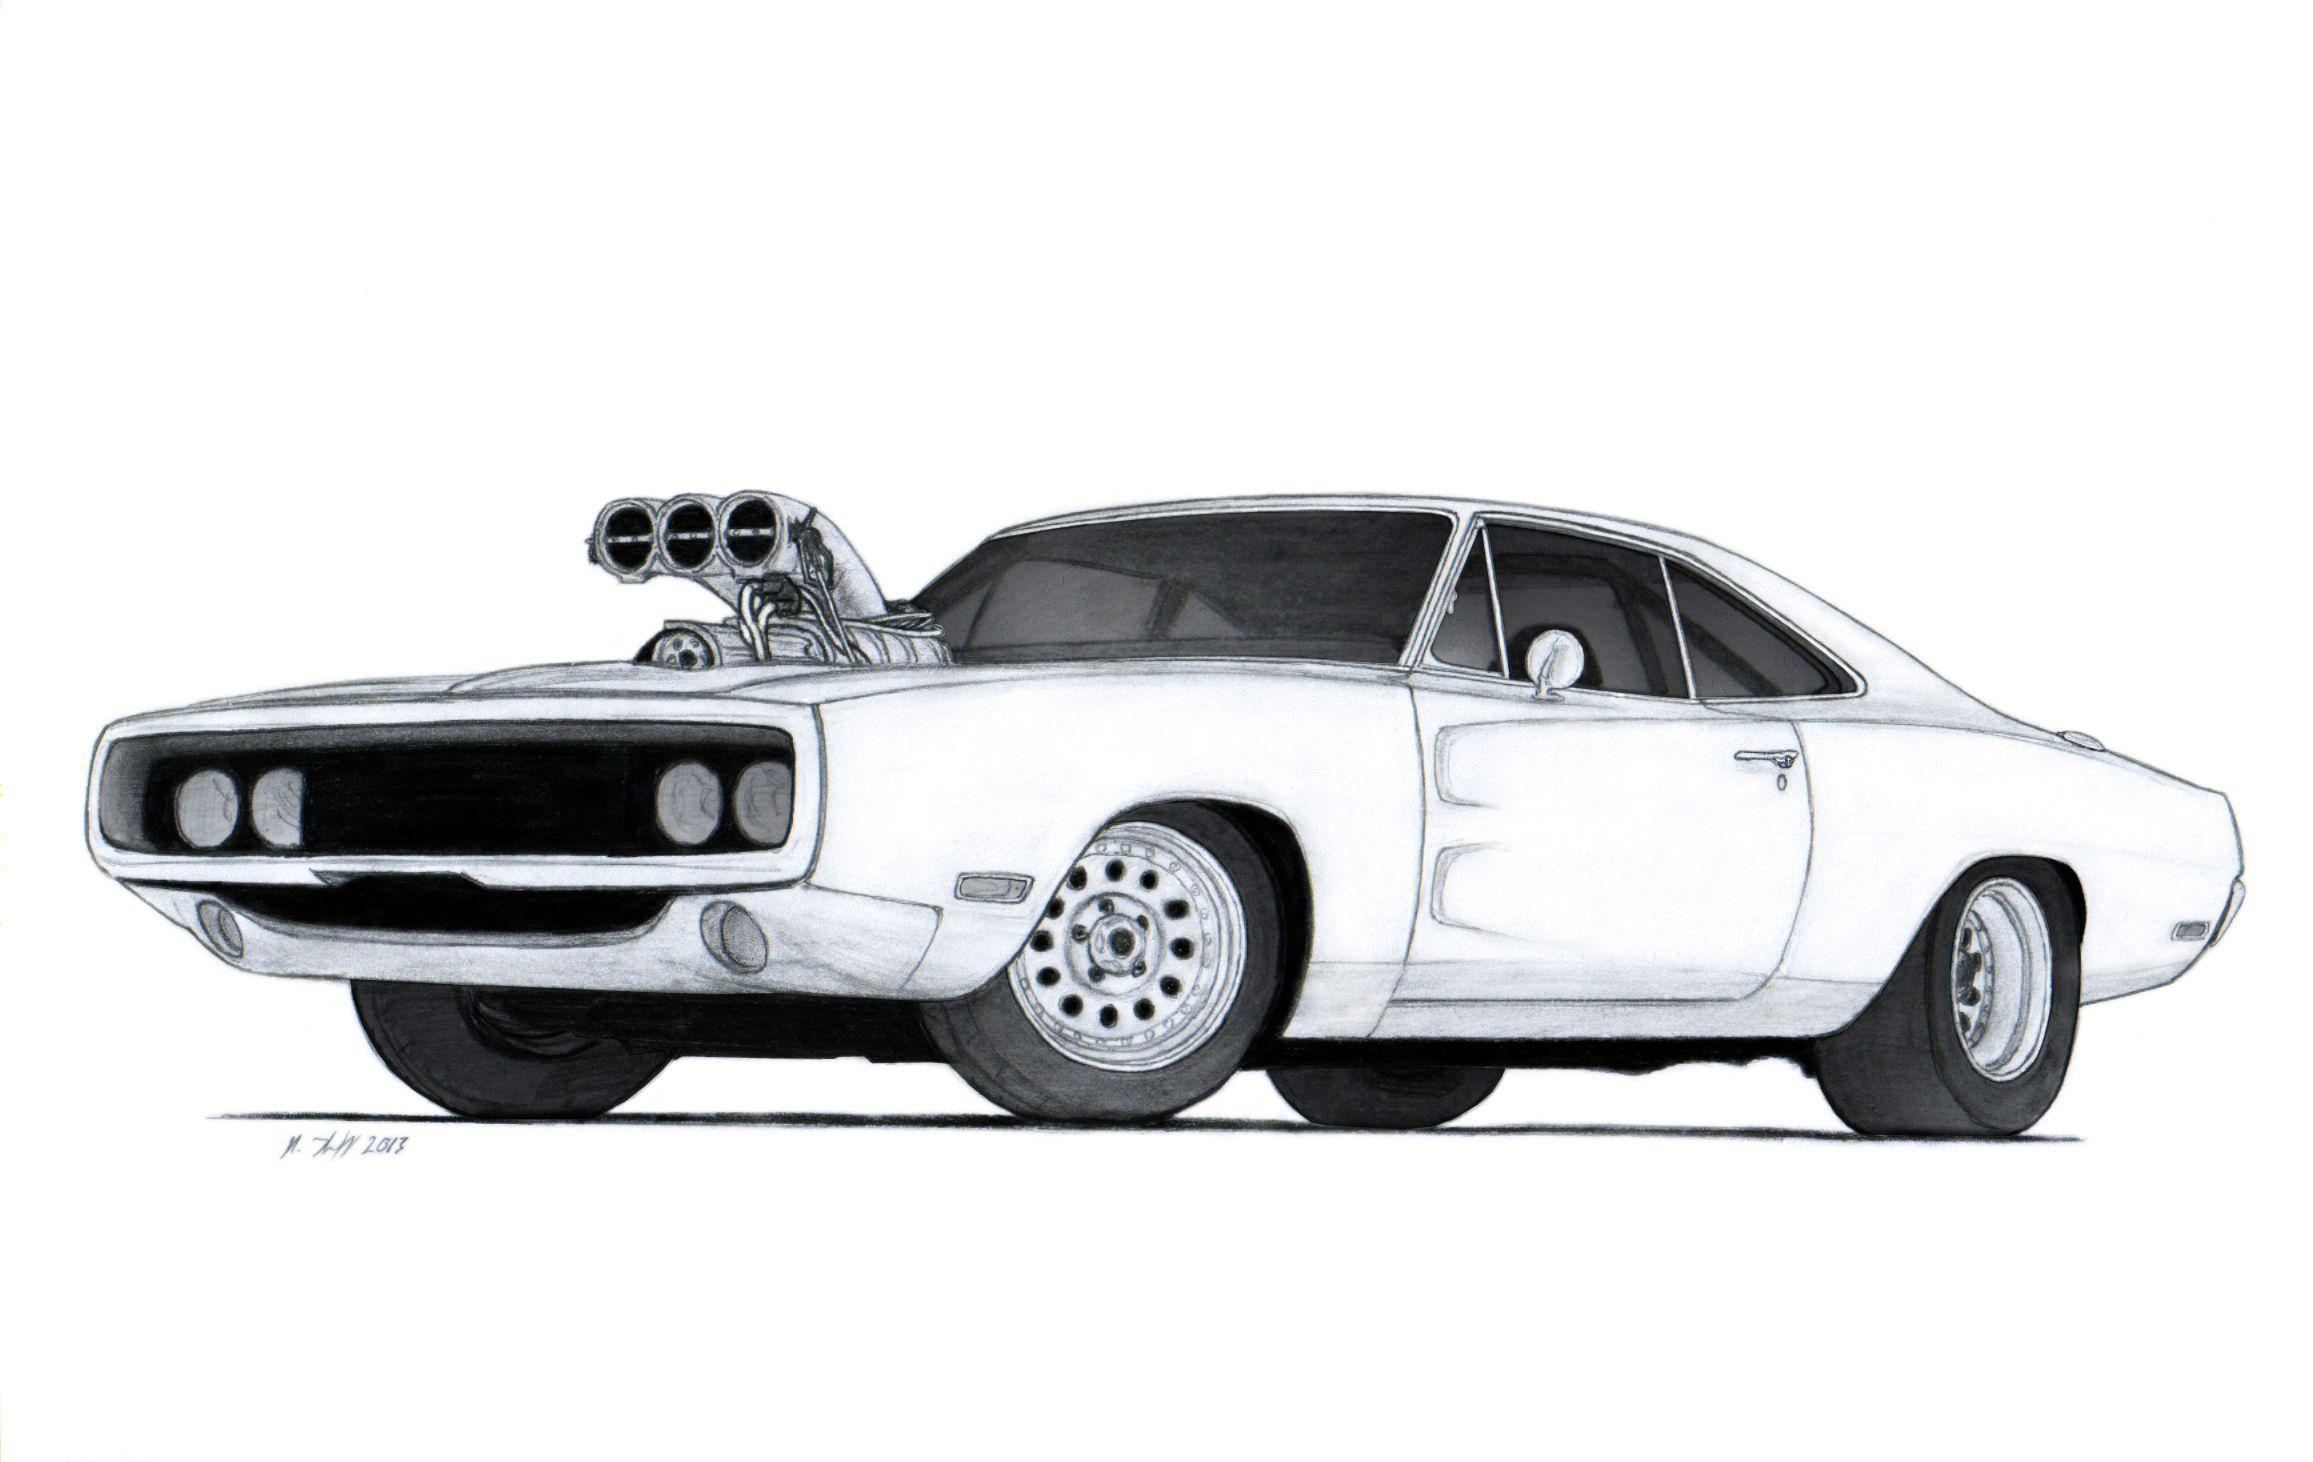 1970 Dodge Charger R/T Drawing by Vertualissimo.deviantart.